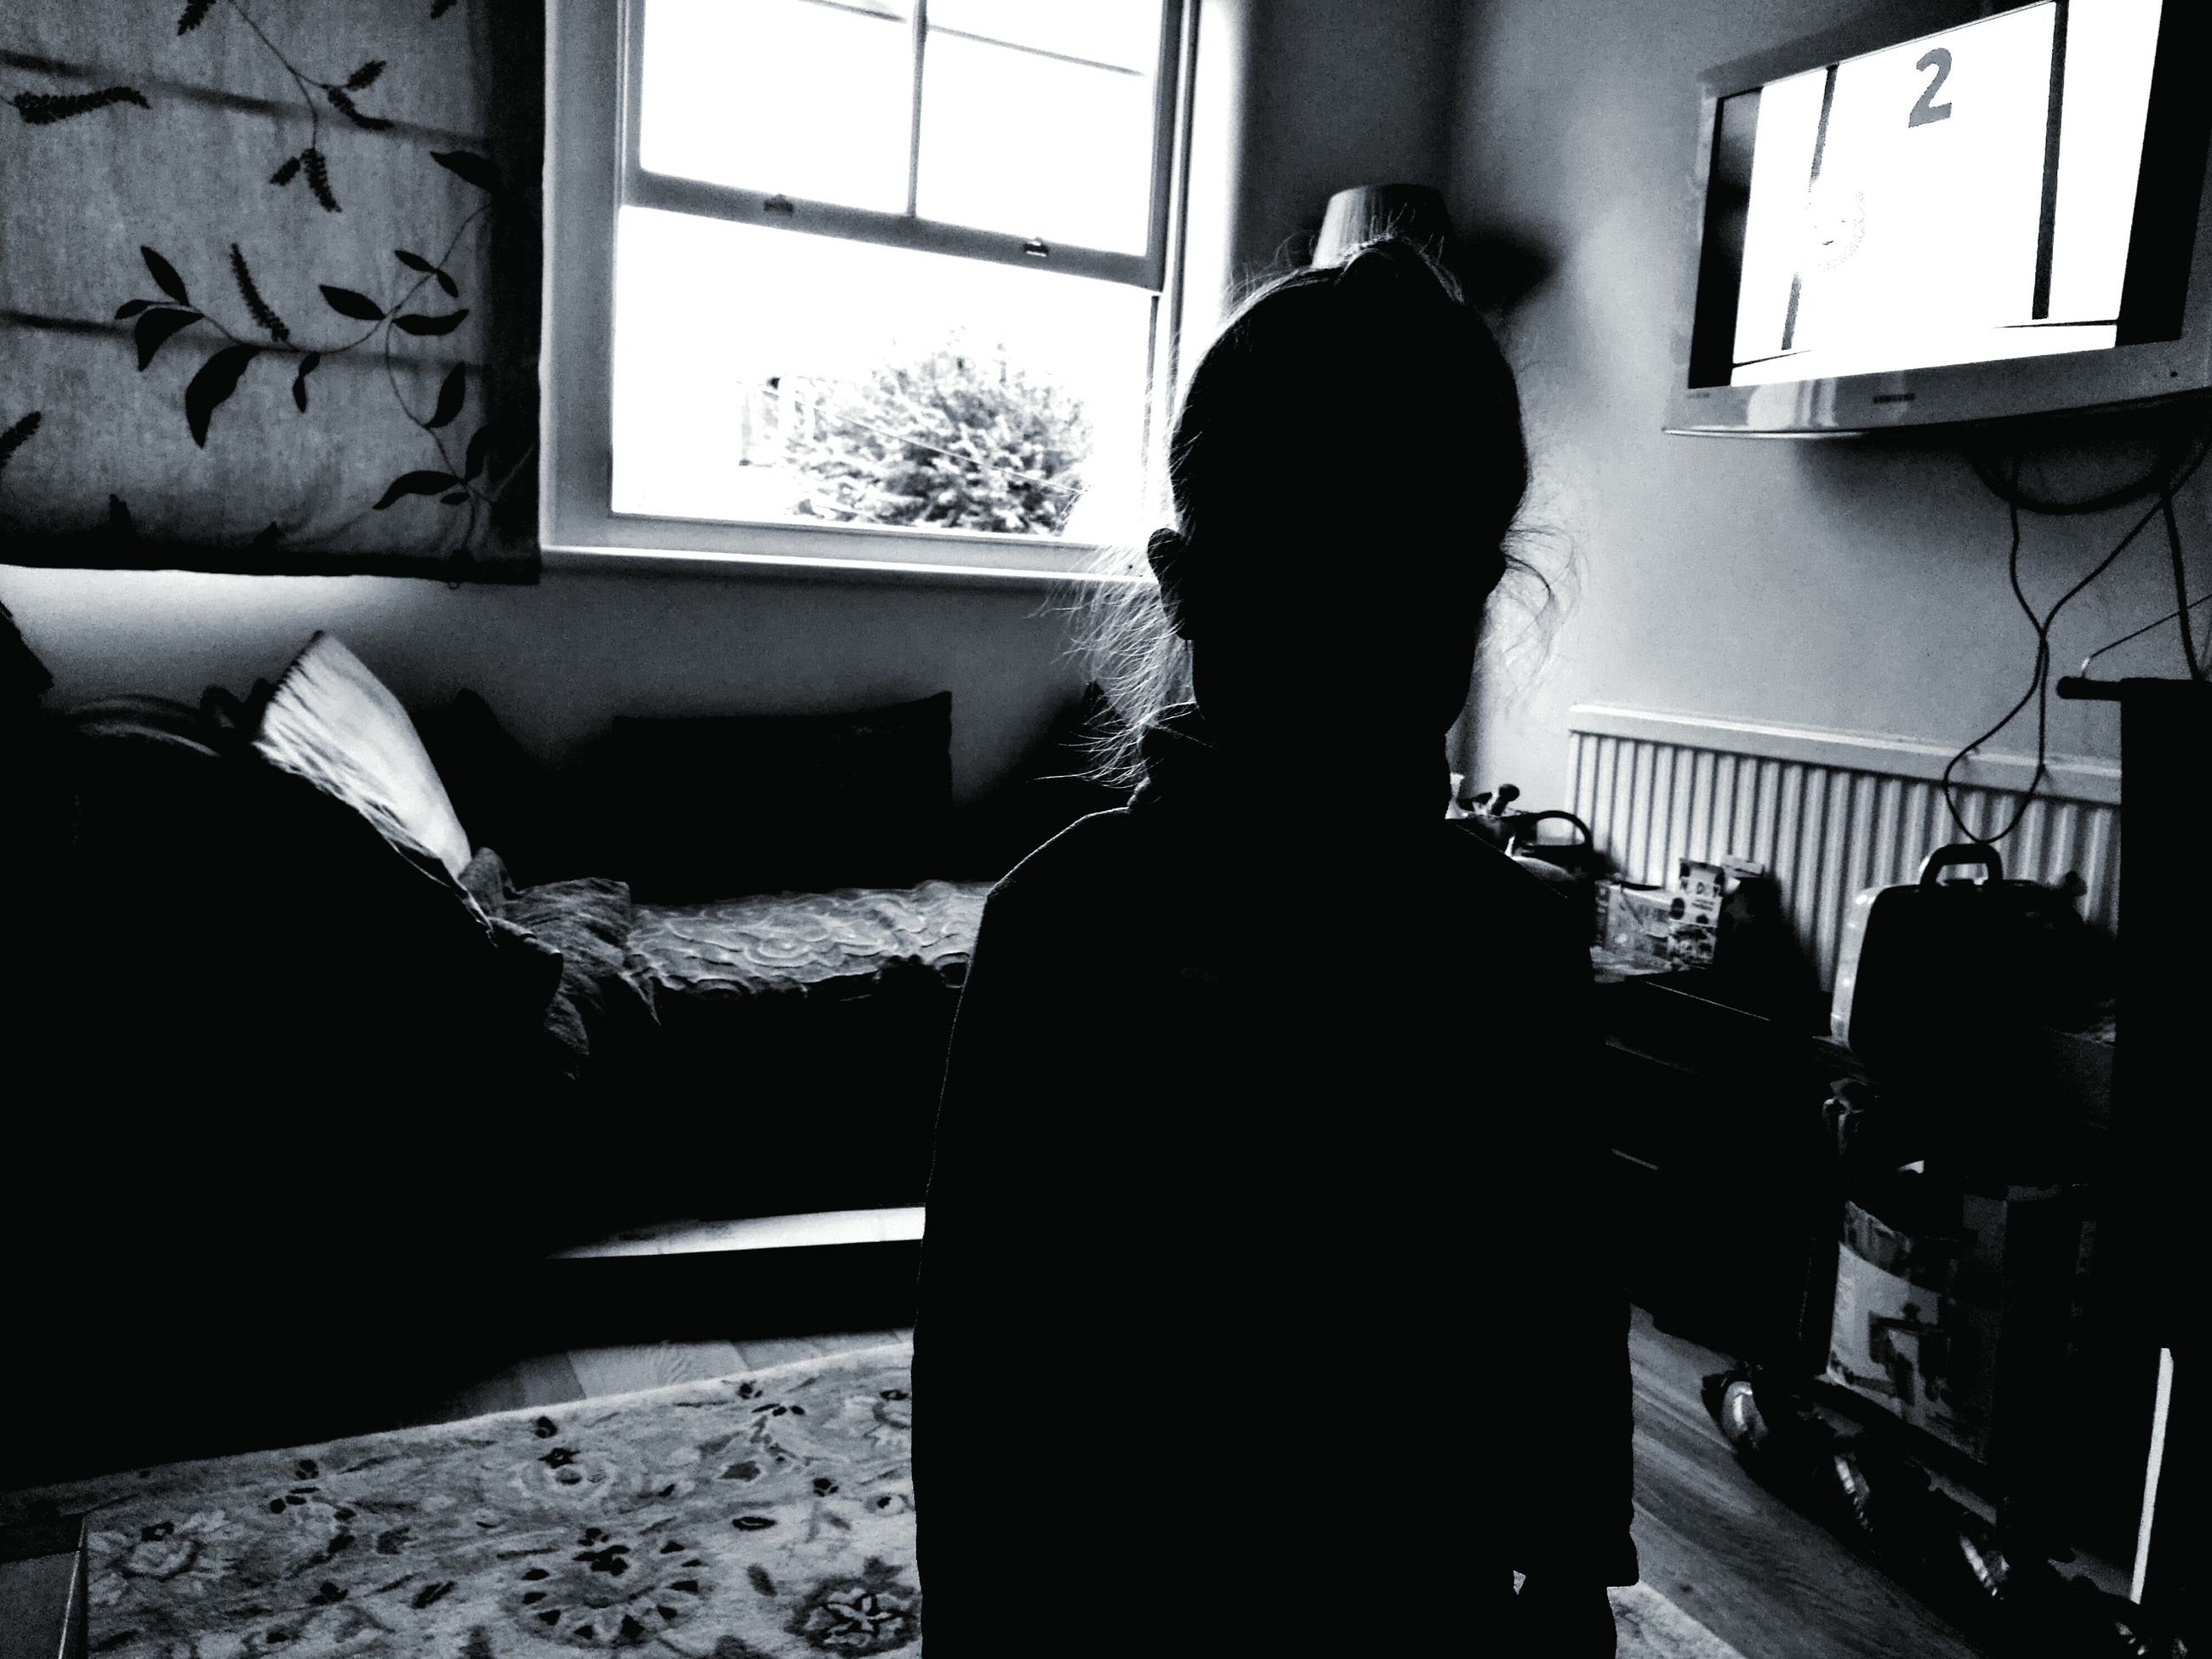 window, indoors, rear view, lifestyles, domestic life, casual clothing, day, loneliness, person, young adult